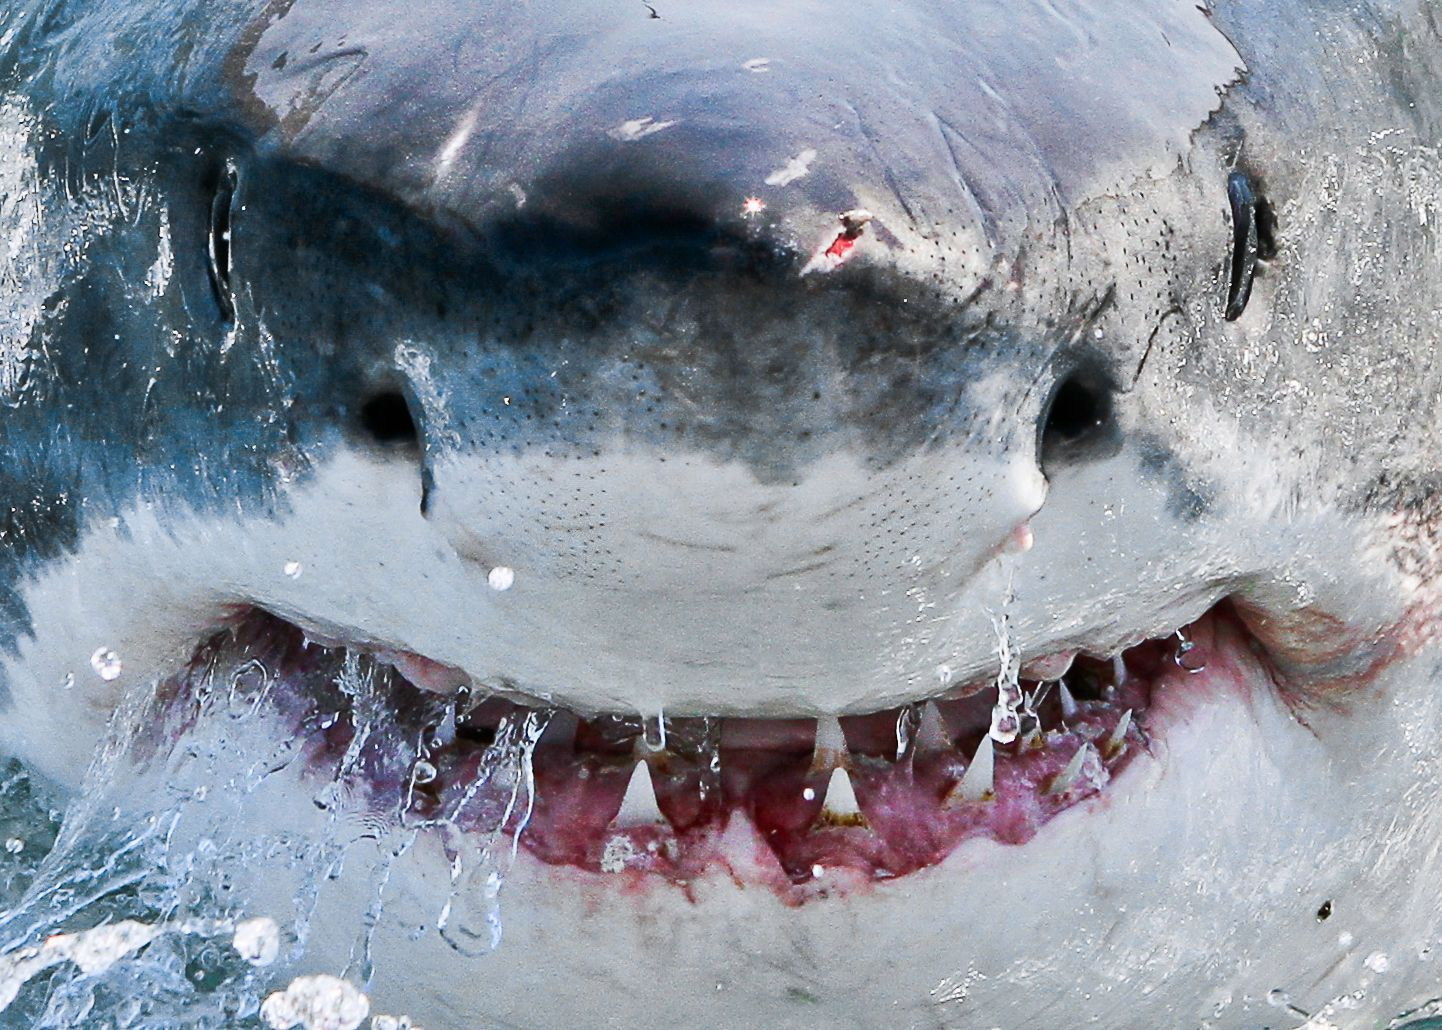 The toothy grin of the ocean's top predator